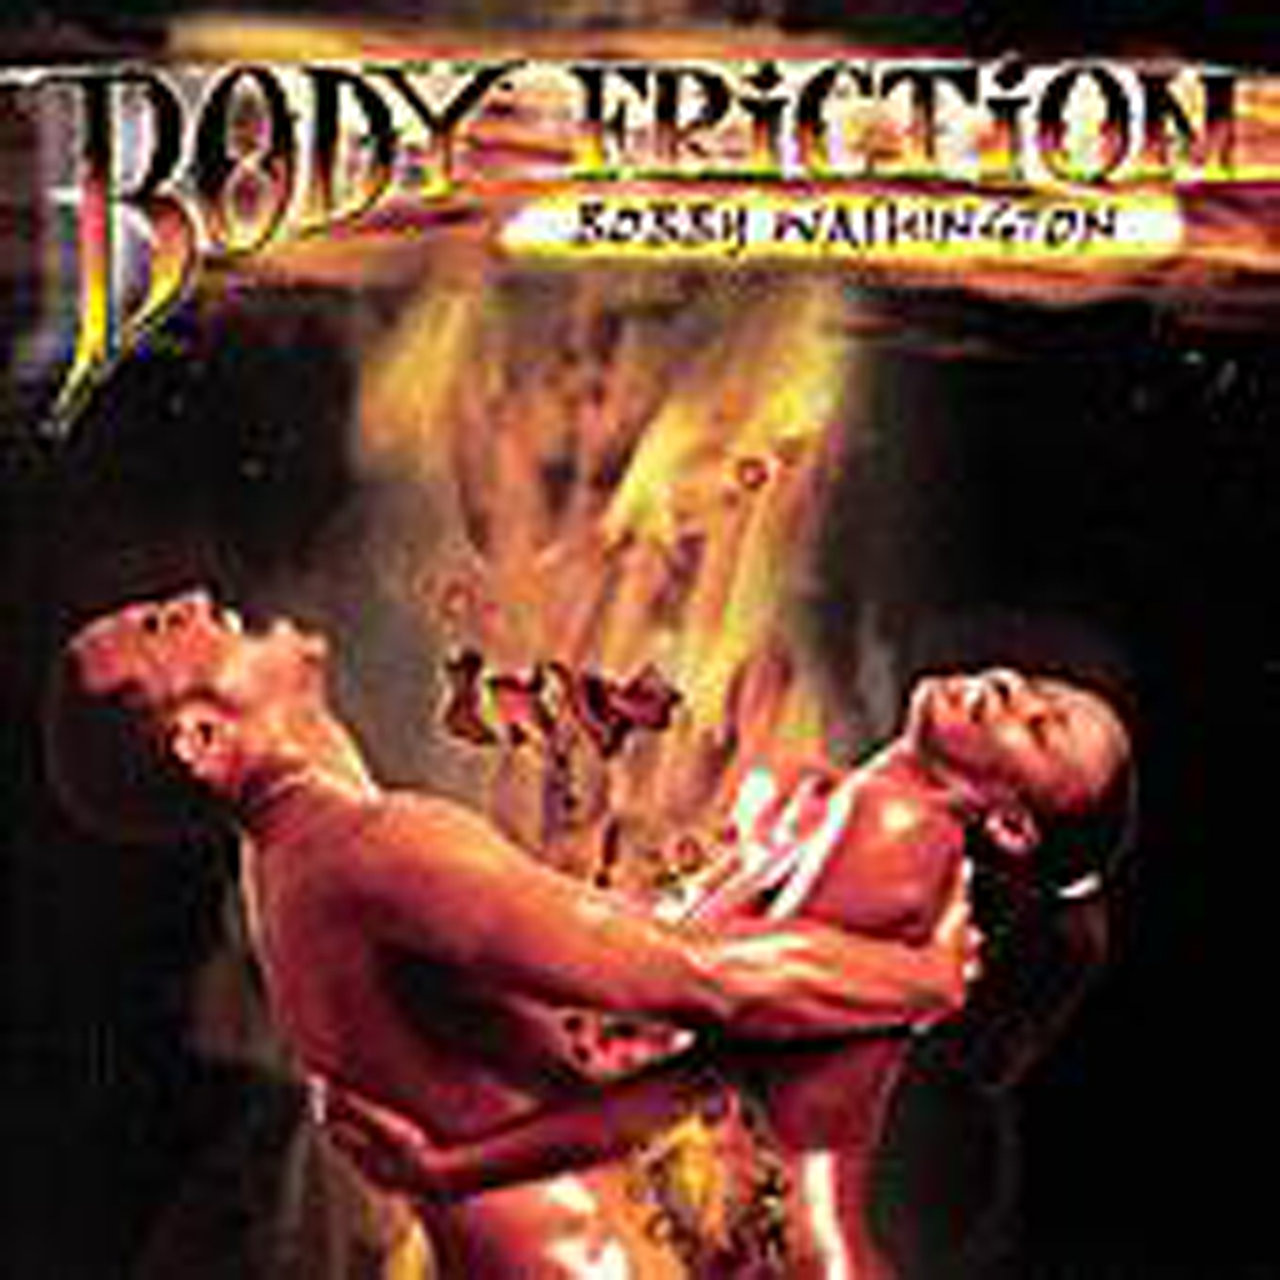 Body Friction